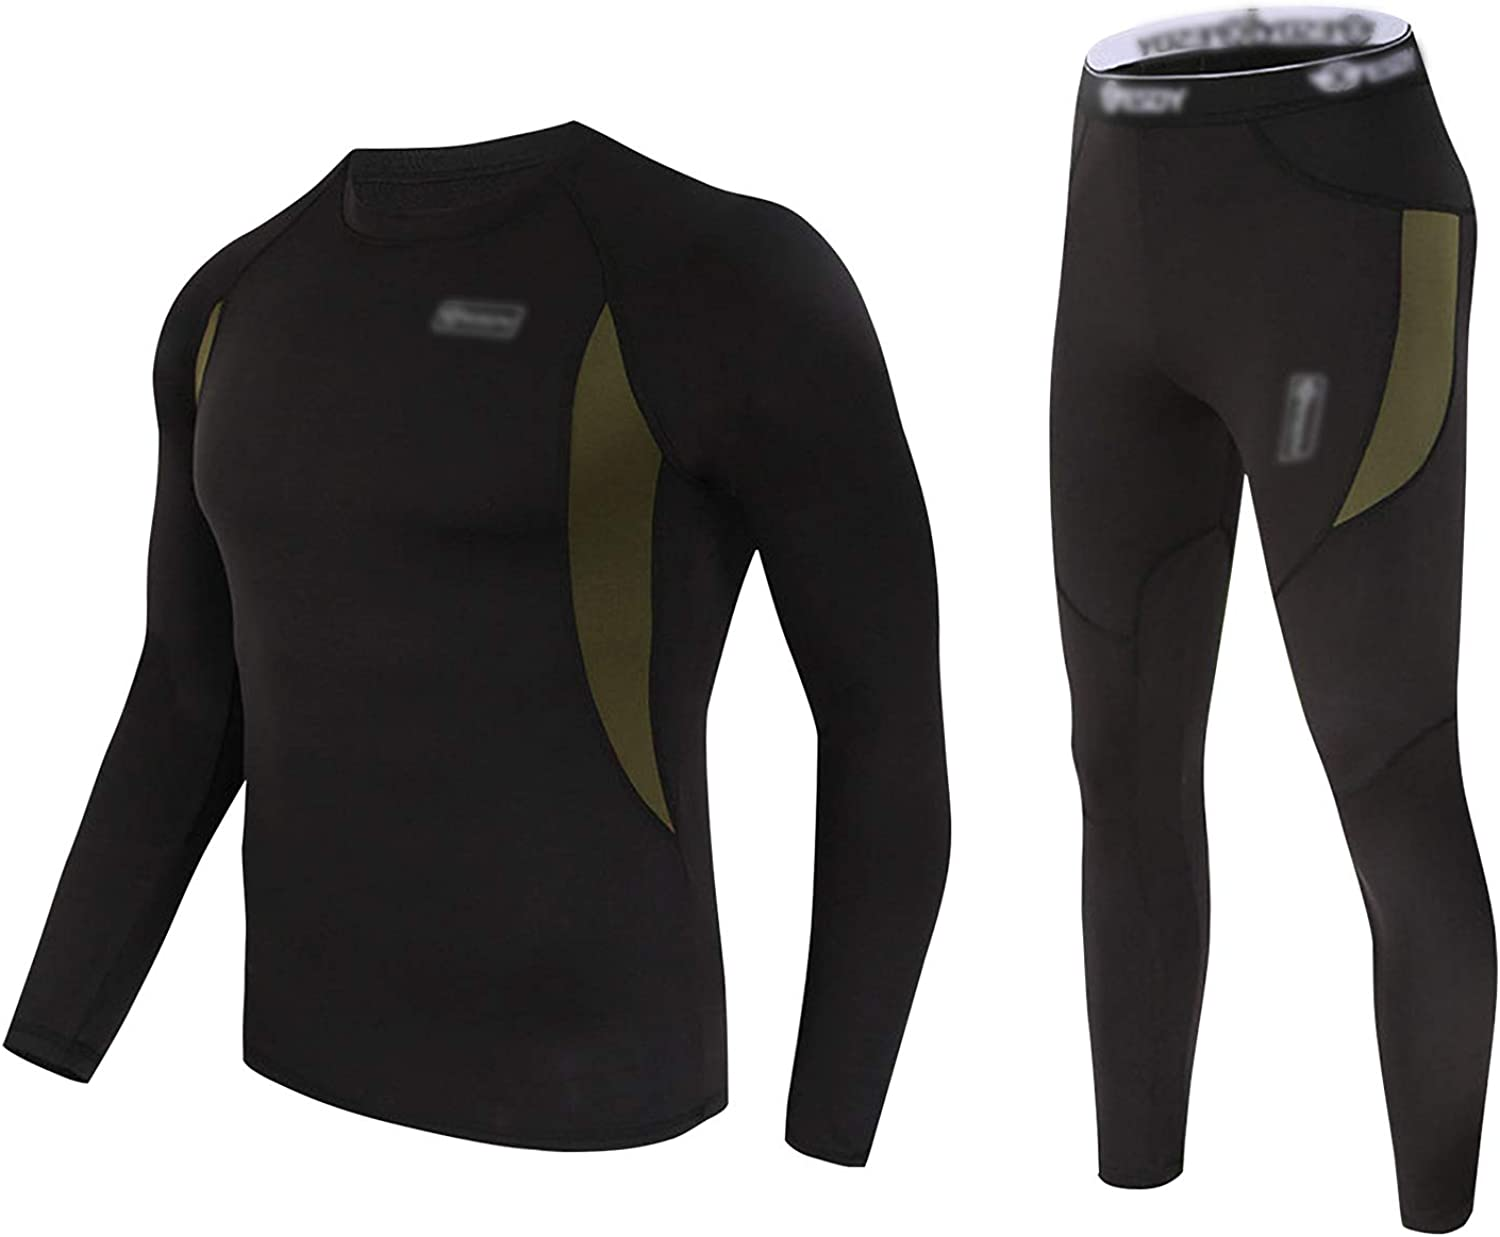 Thermal Underwear New Albuquerque Mall Free Shipping Set Winter Hunting Gear Base Long Johns Sport